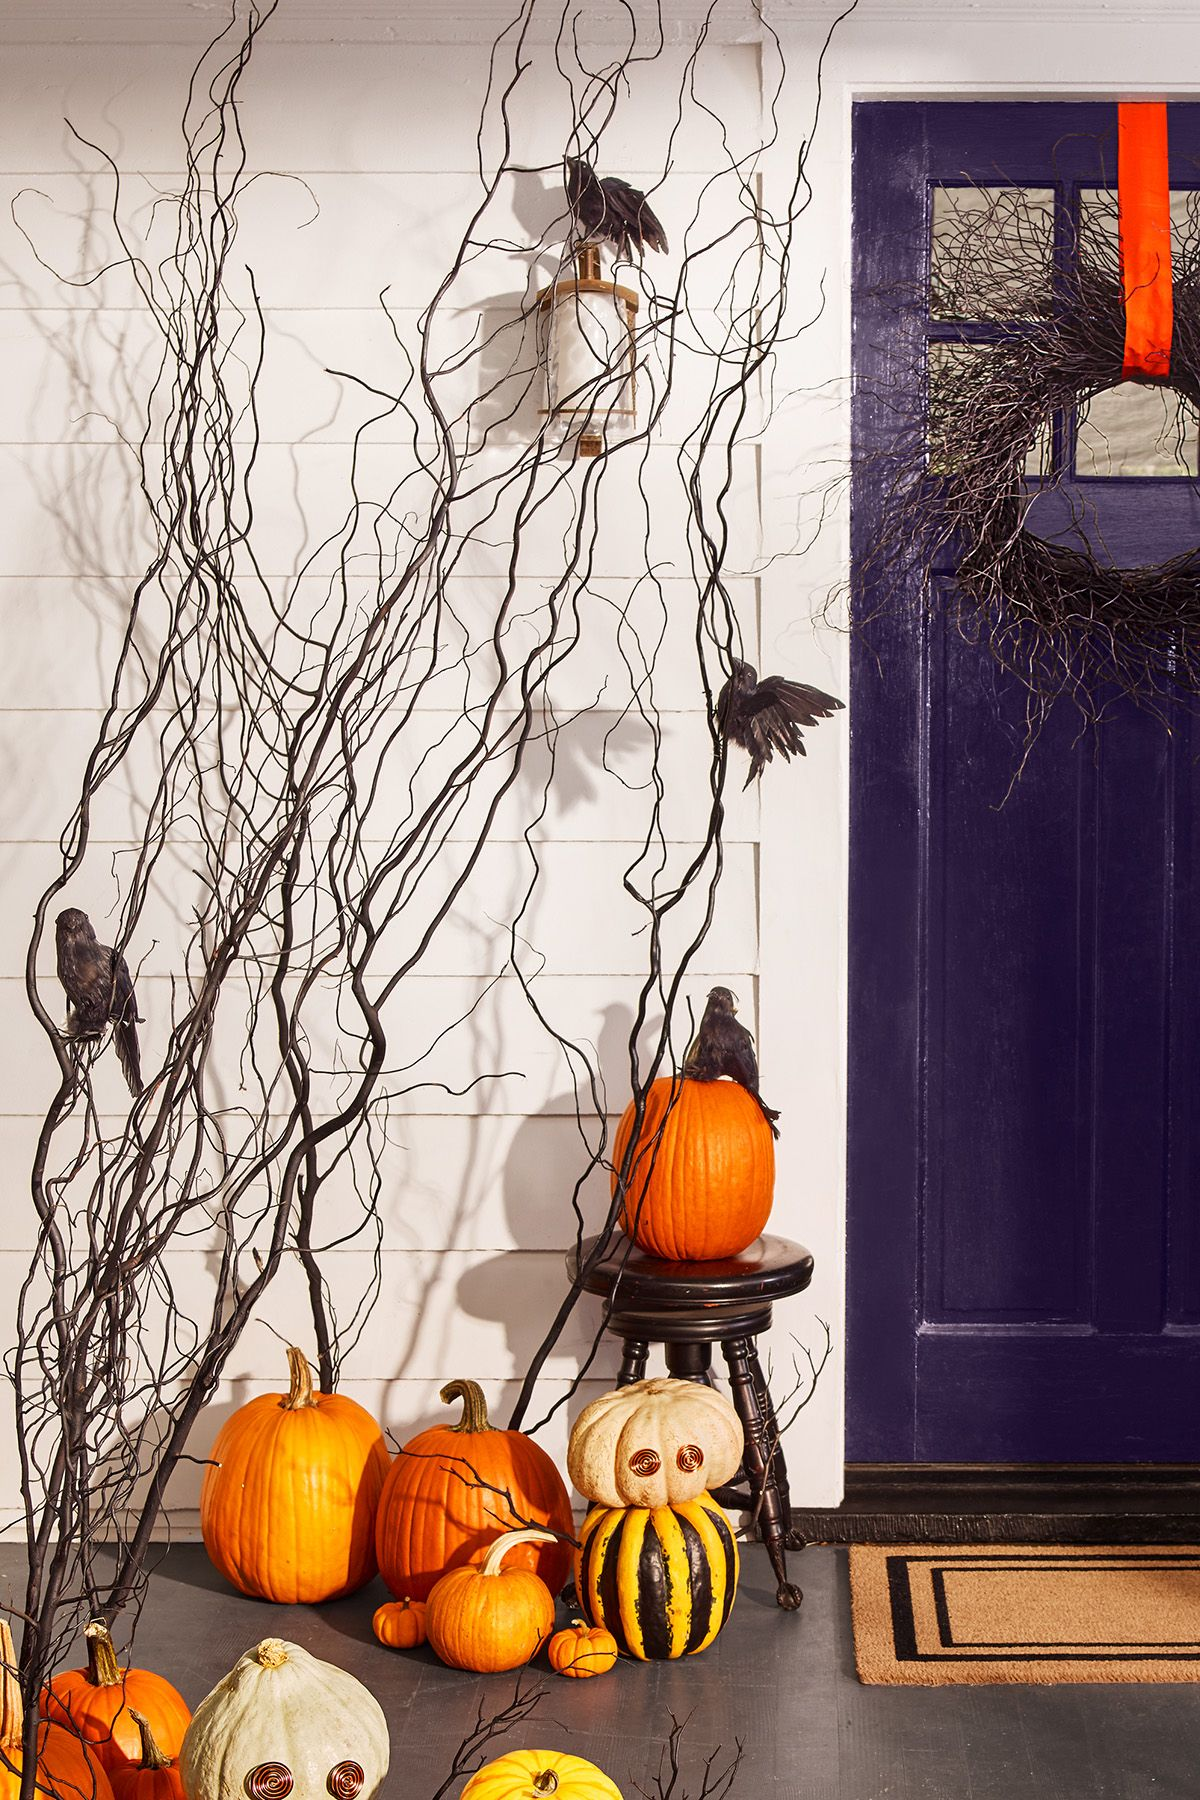 46 Easy Halloween Party Ideas \u2014 DIY Halloween Party Ideas